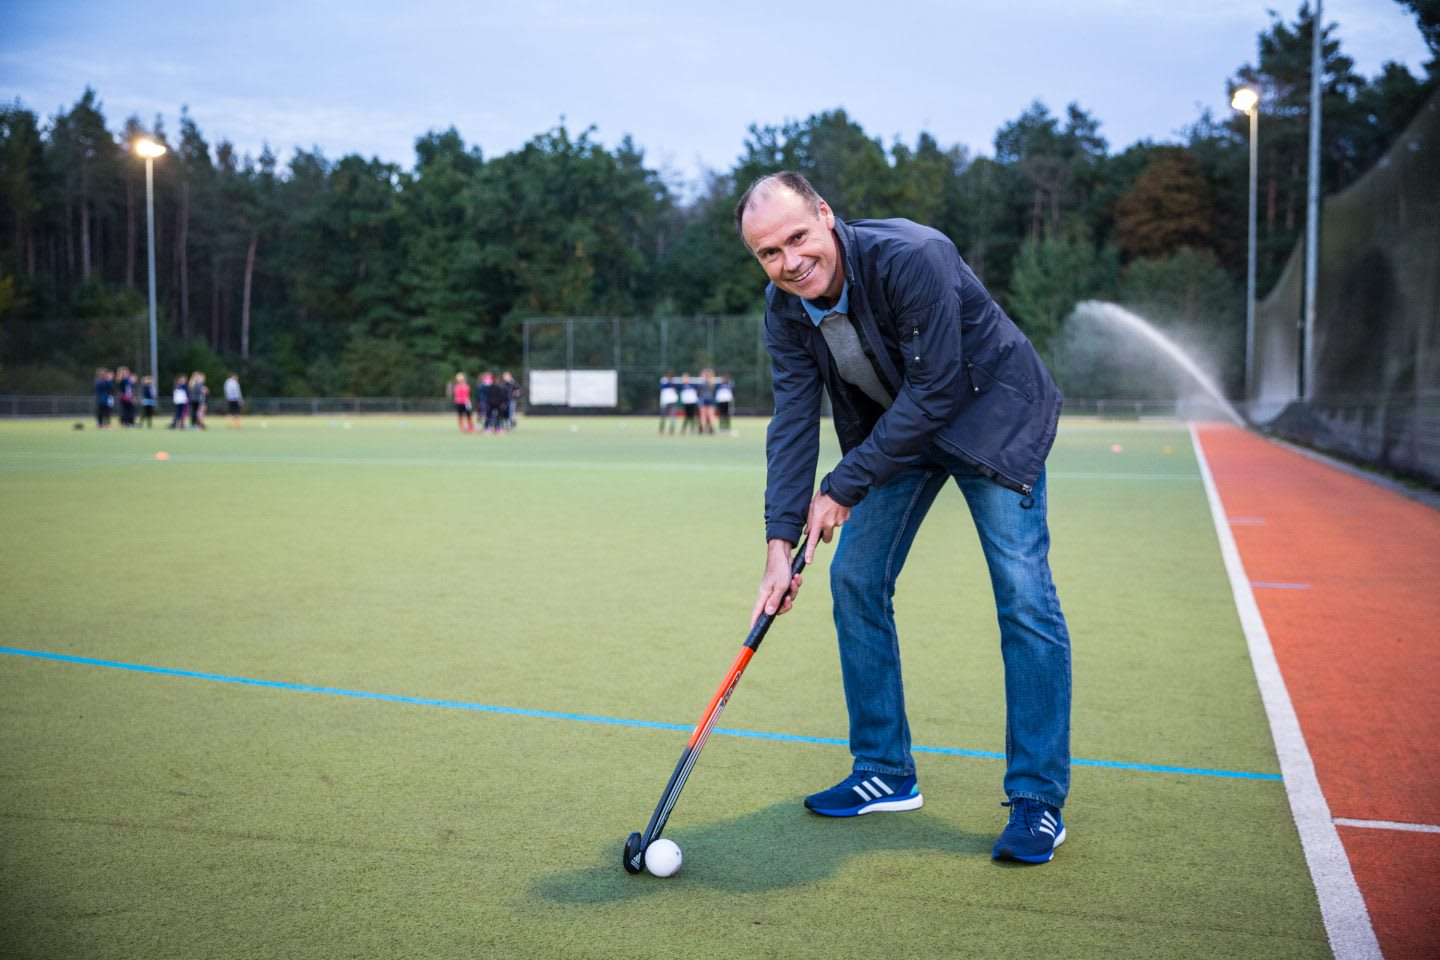 Coach is smiling at the camera while demonstrating a proper field hockey stance with the stick and ball.